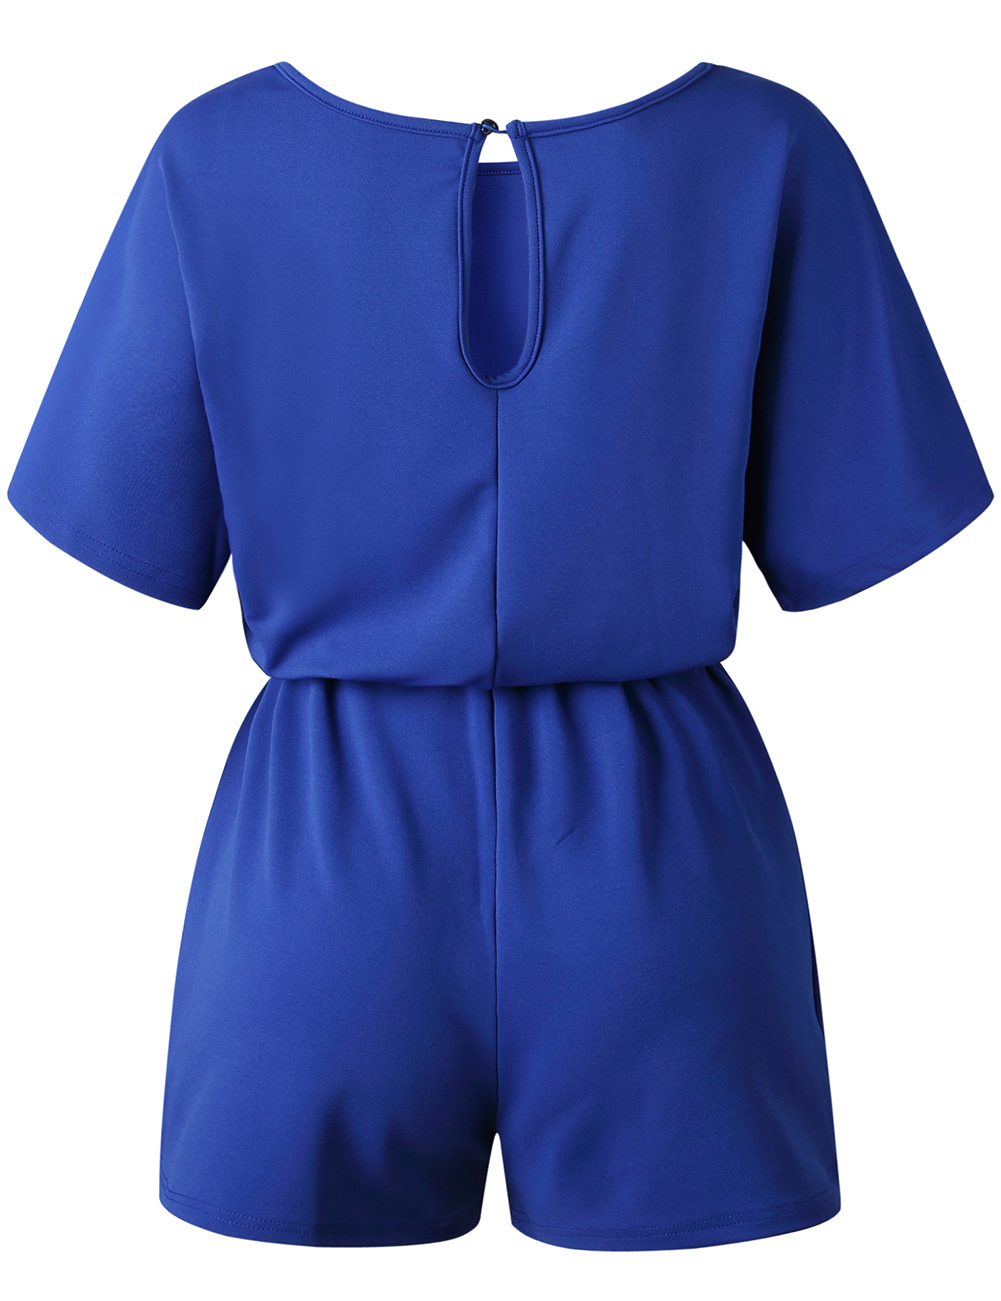 //cdn.affectcloud.com/hexinfashion/upload/imgs/Dress/Jumpsuit_Romper/H195052-BU1/H195052-BU1-201911065dc22de31dfaf.jpg